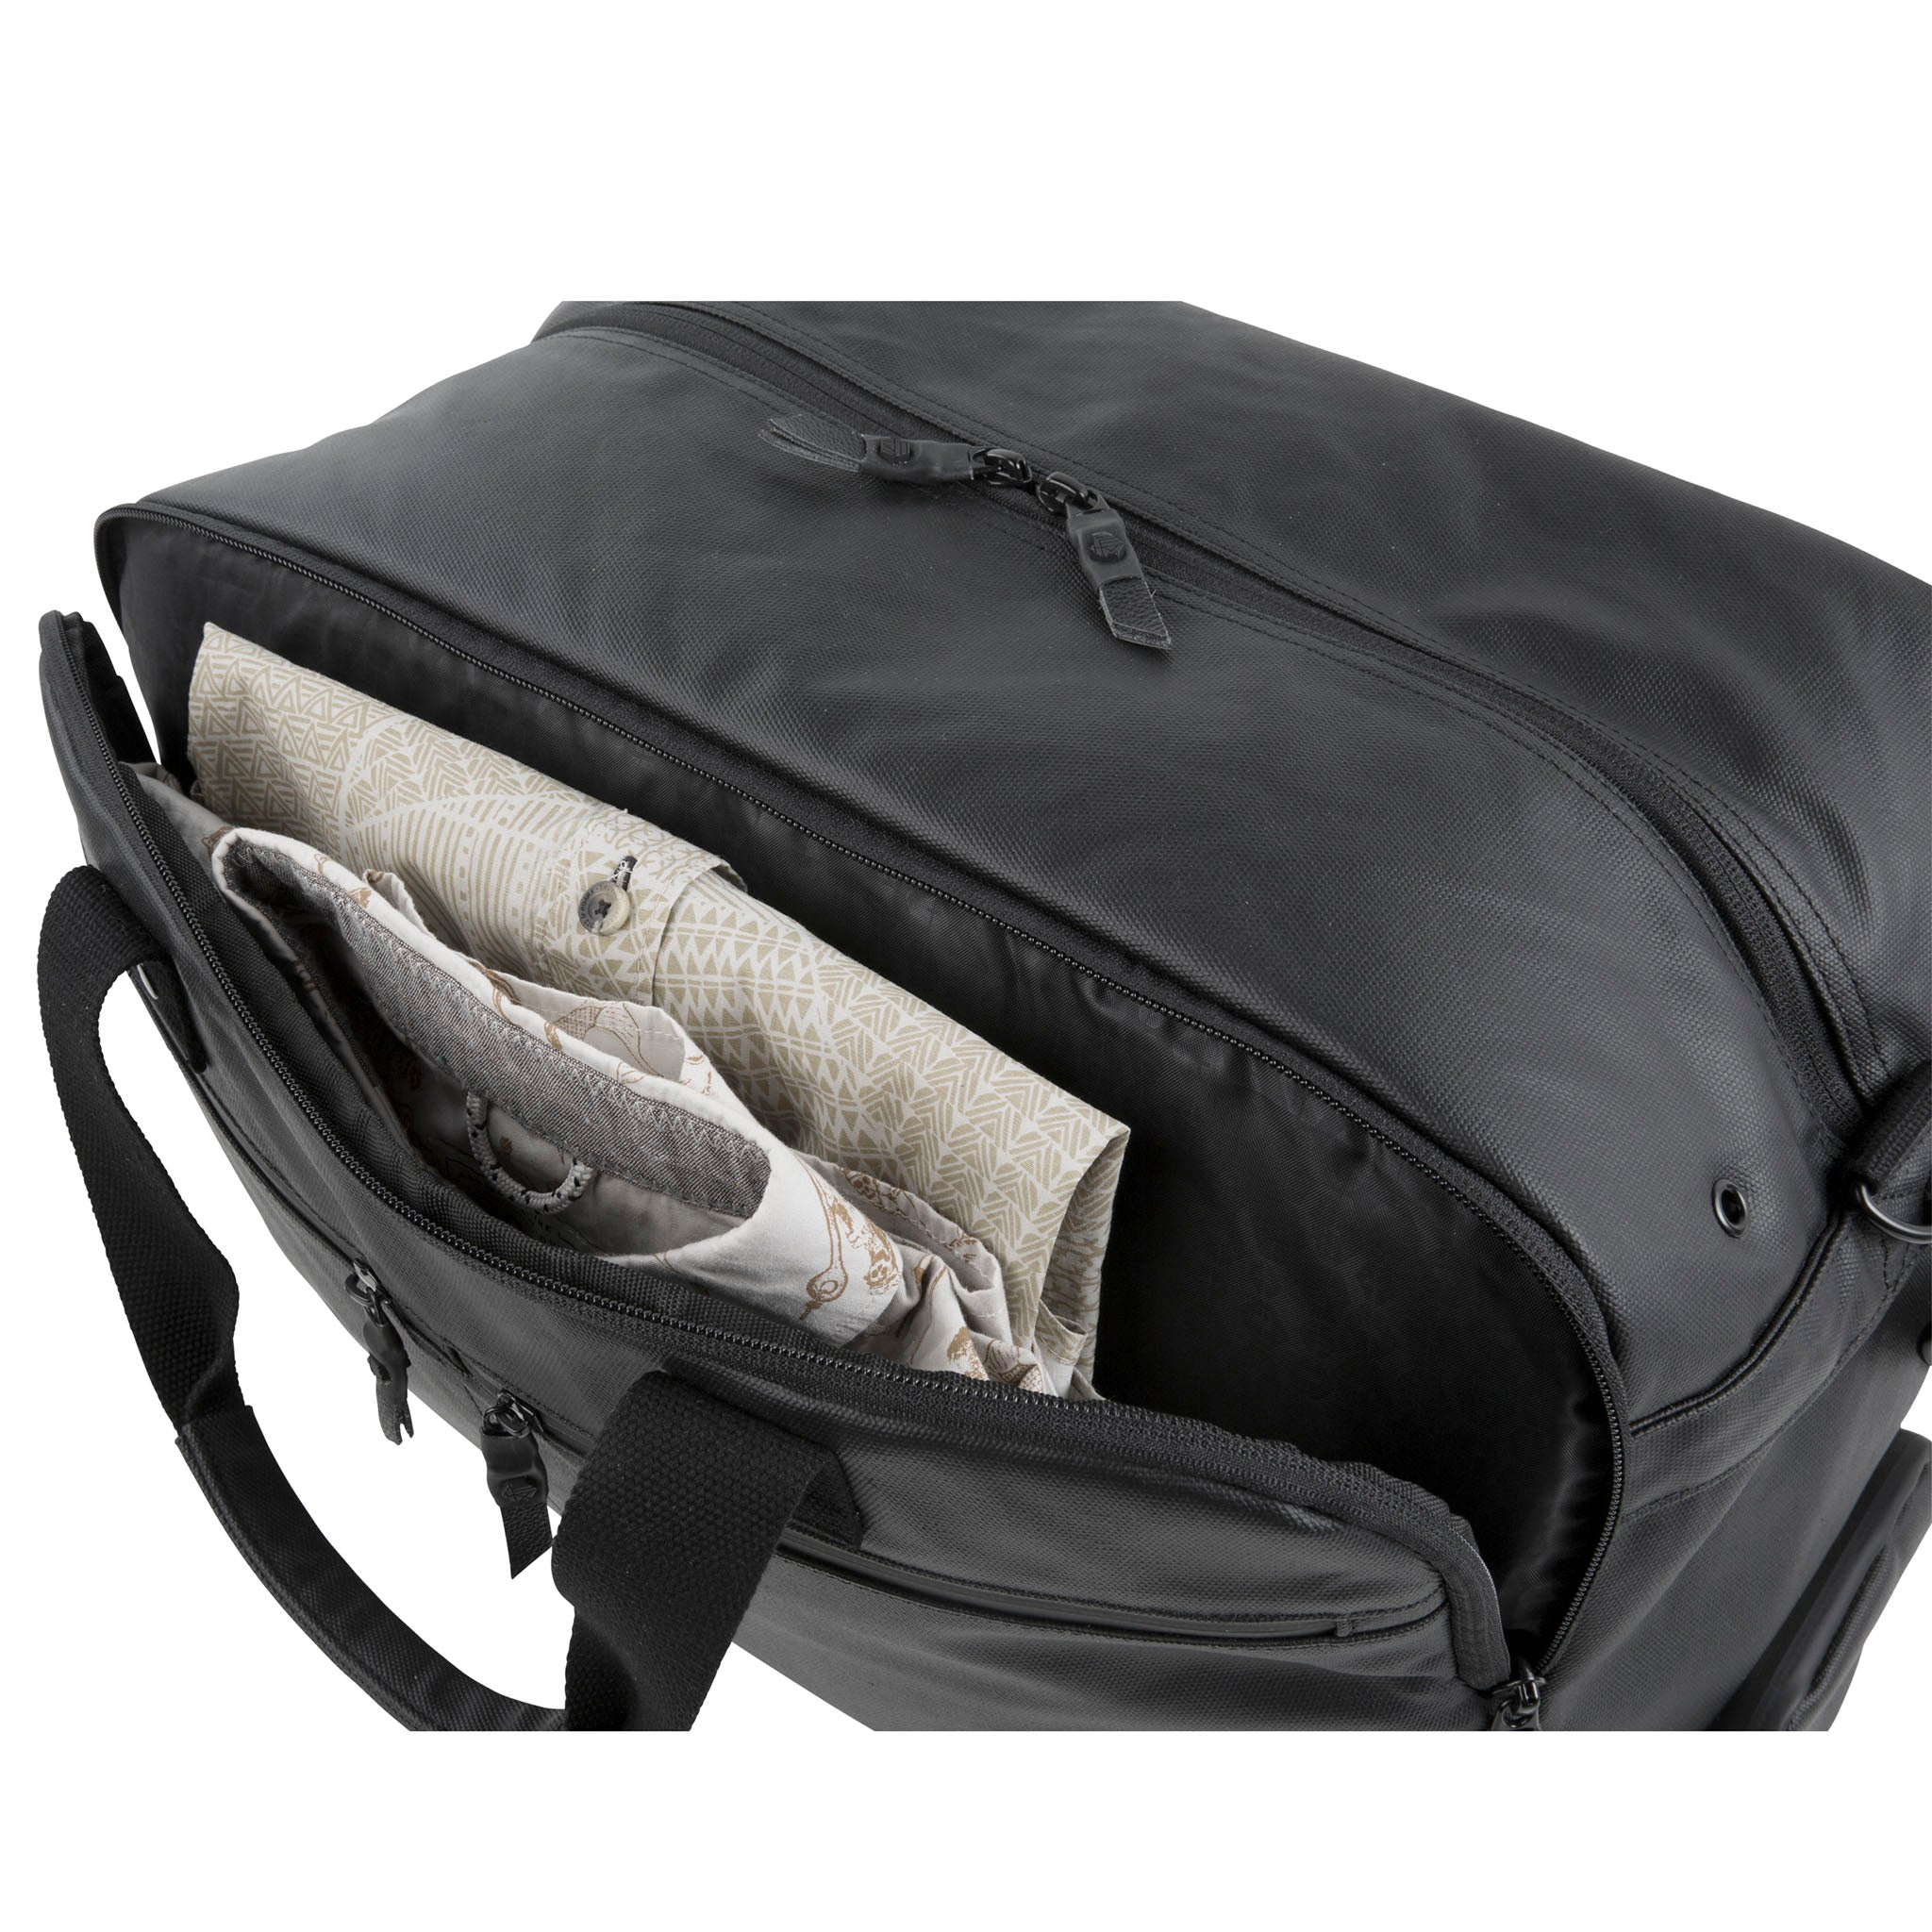 db03f7c46a Calibre Black Medium Gym Duffel